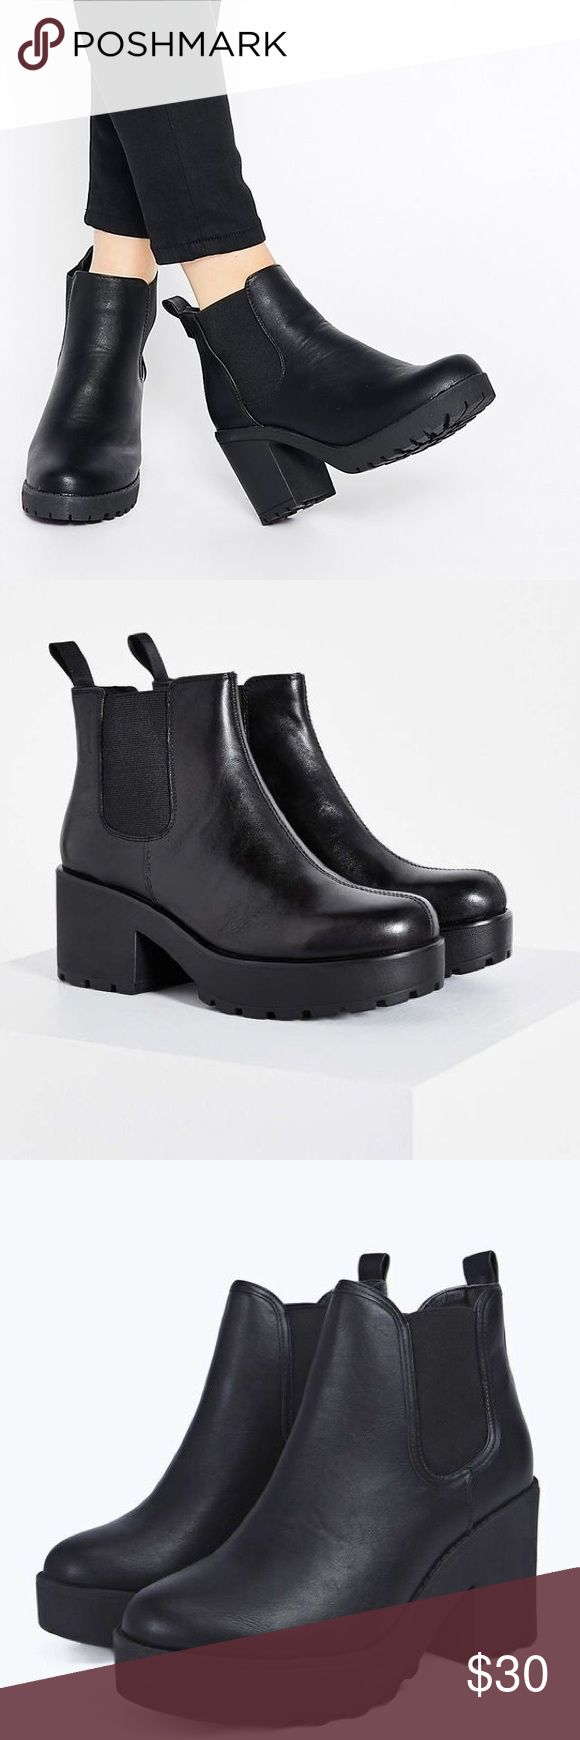 Platform Chelsea Boots Faux leather platform Chelsea boots from H&M with a black rubber sole. Slip on style and super comfortable and easy to walk in. Lightly worn. H&M Shoes Platforms